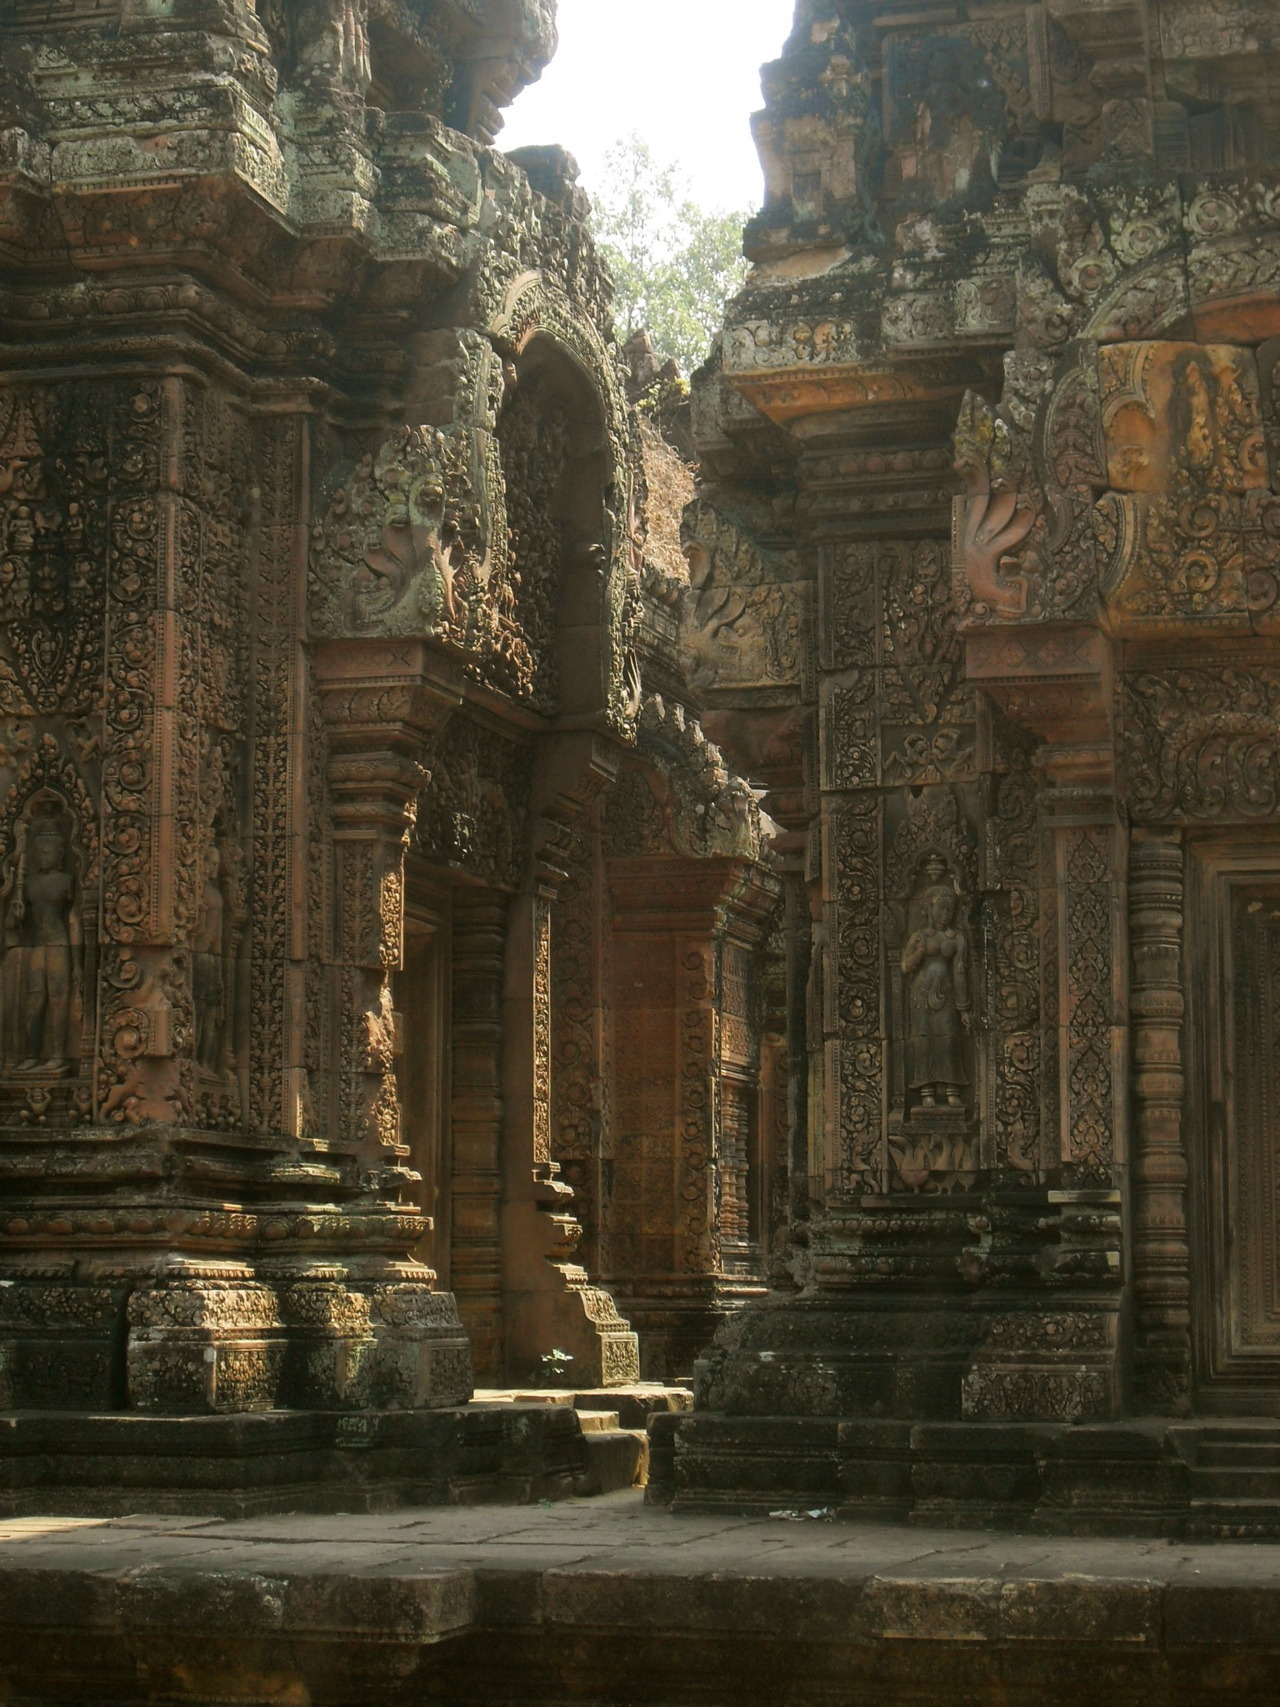 Some of the finest carving in Angkor was at Banteay Sri.